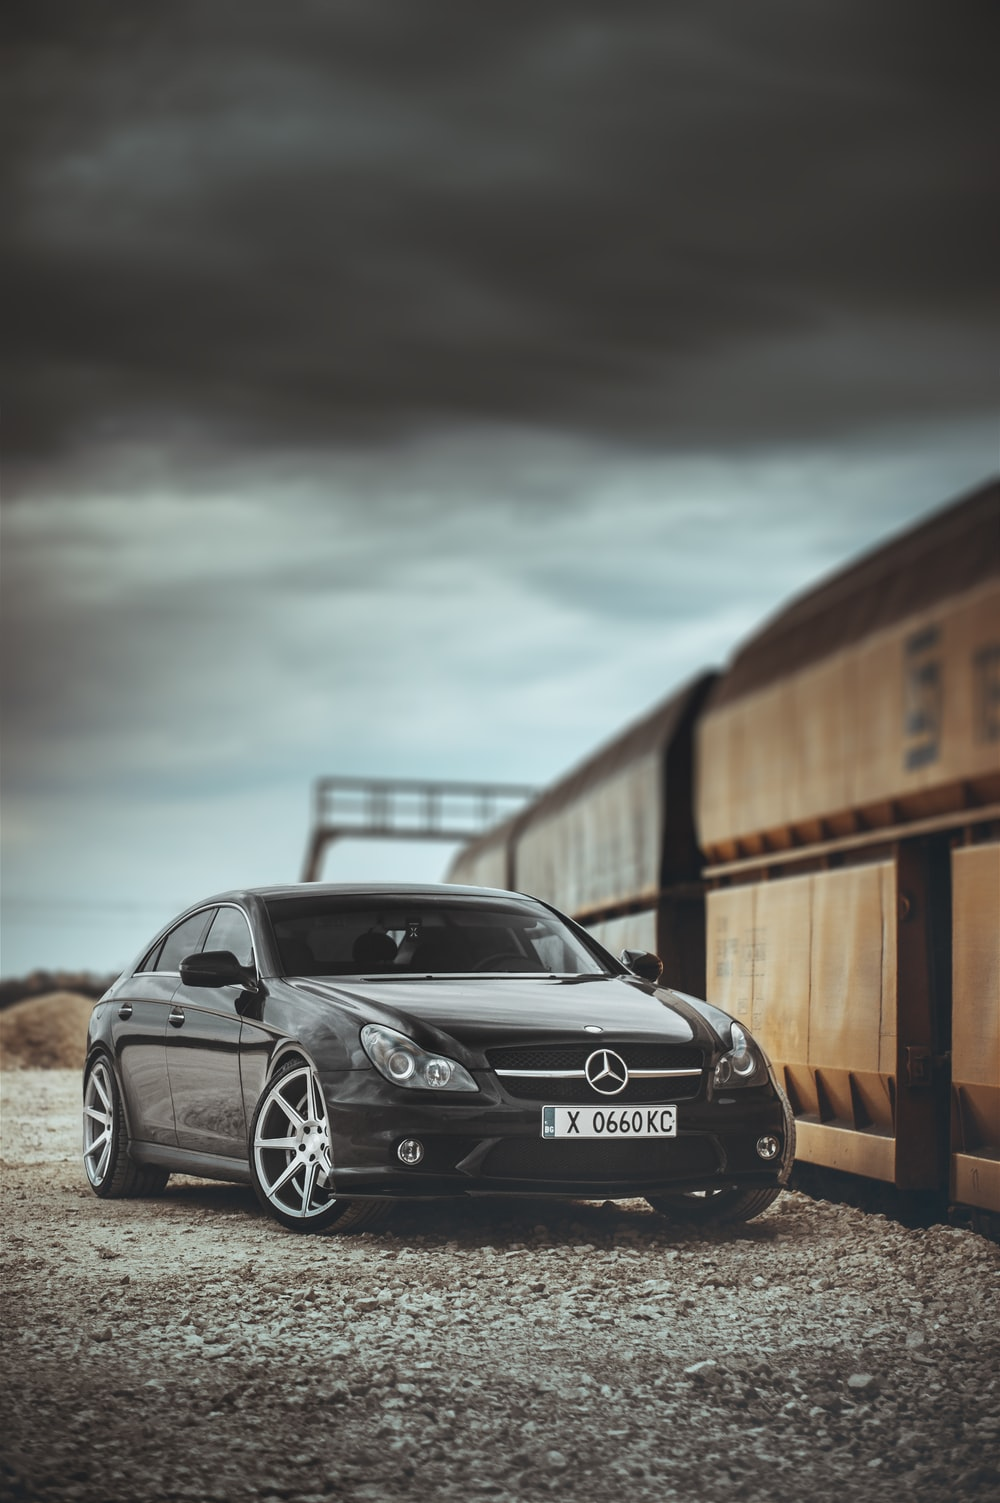 black mercedes benz coupe parked beside brown wooden fence during daytime